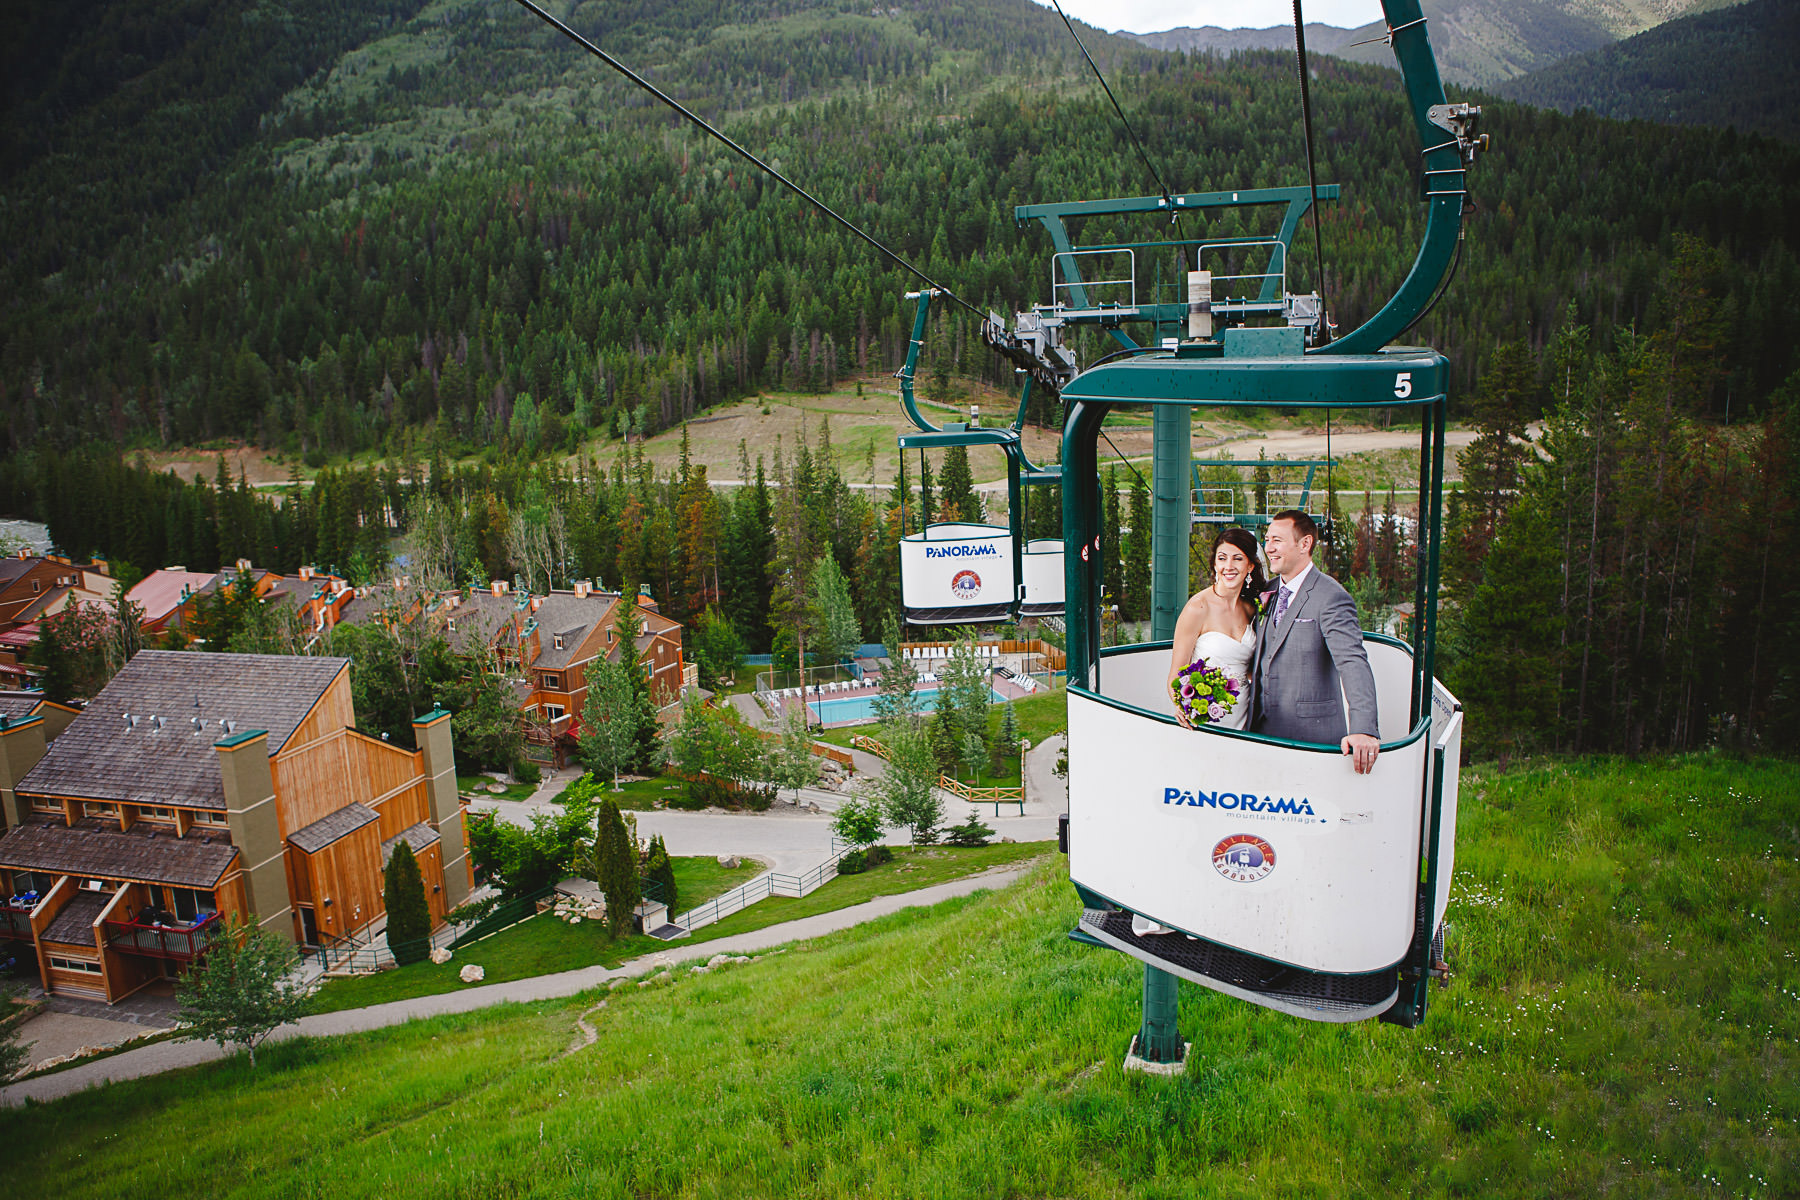 Bride and groom riding in gondola at Panorama Ski Hill